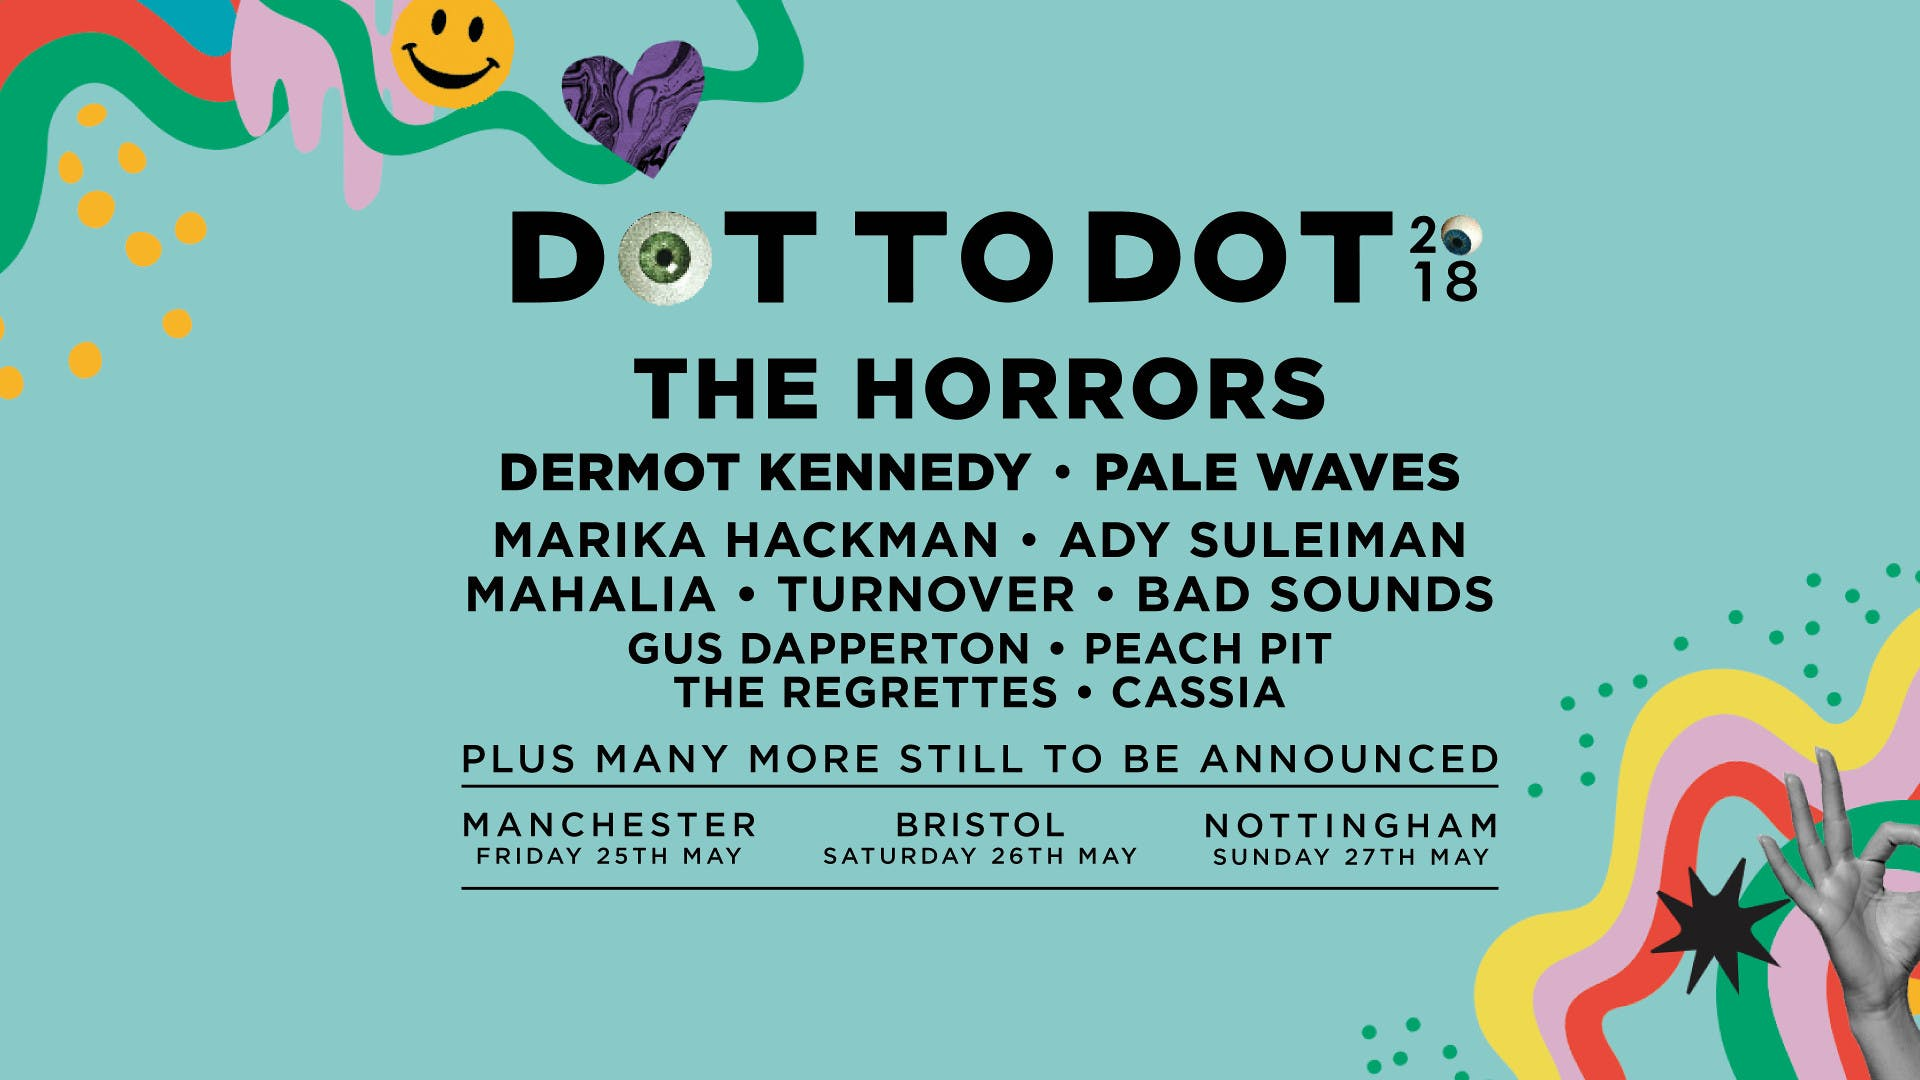 PREVIEW: DOT TO DOT FESTIVAL